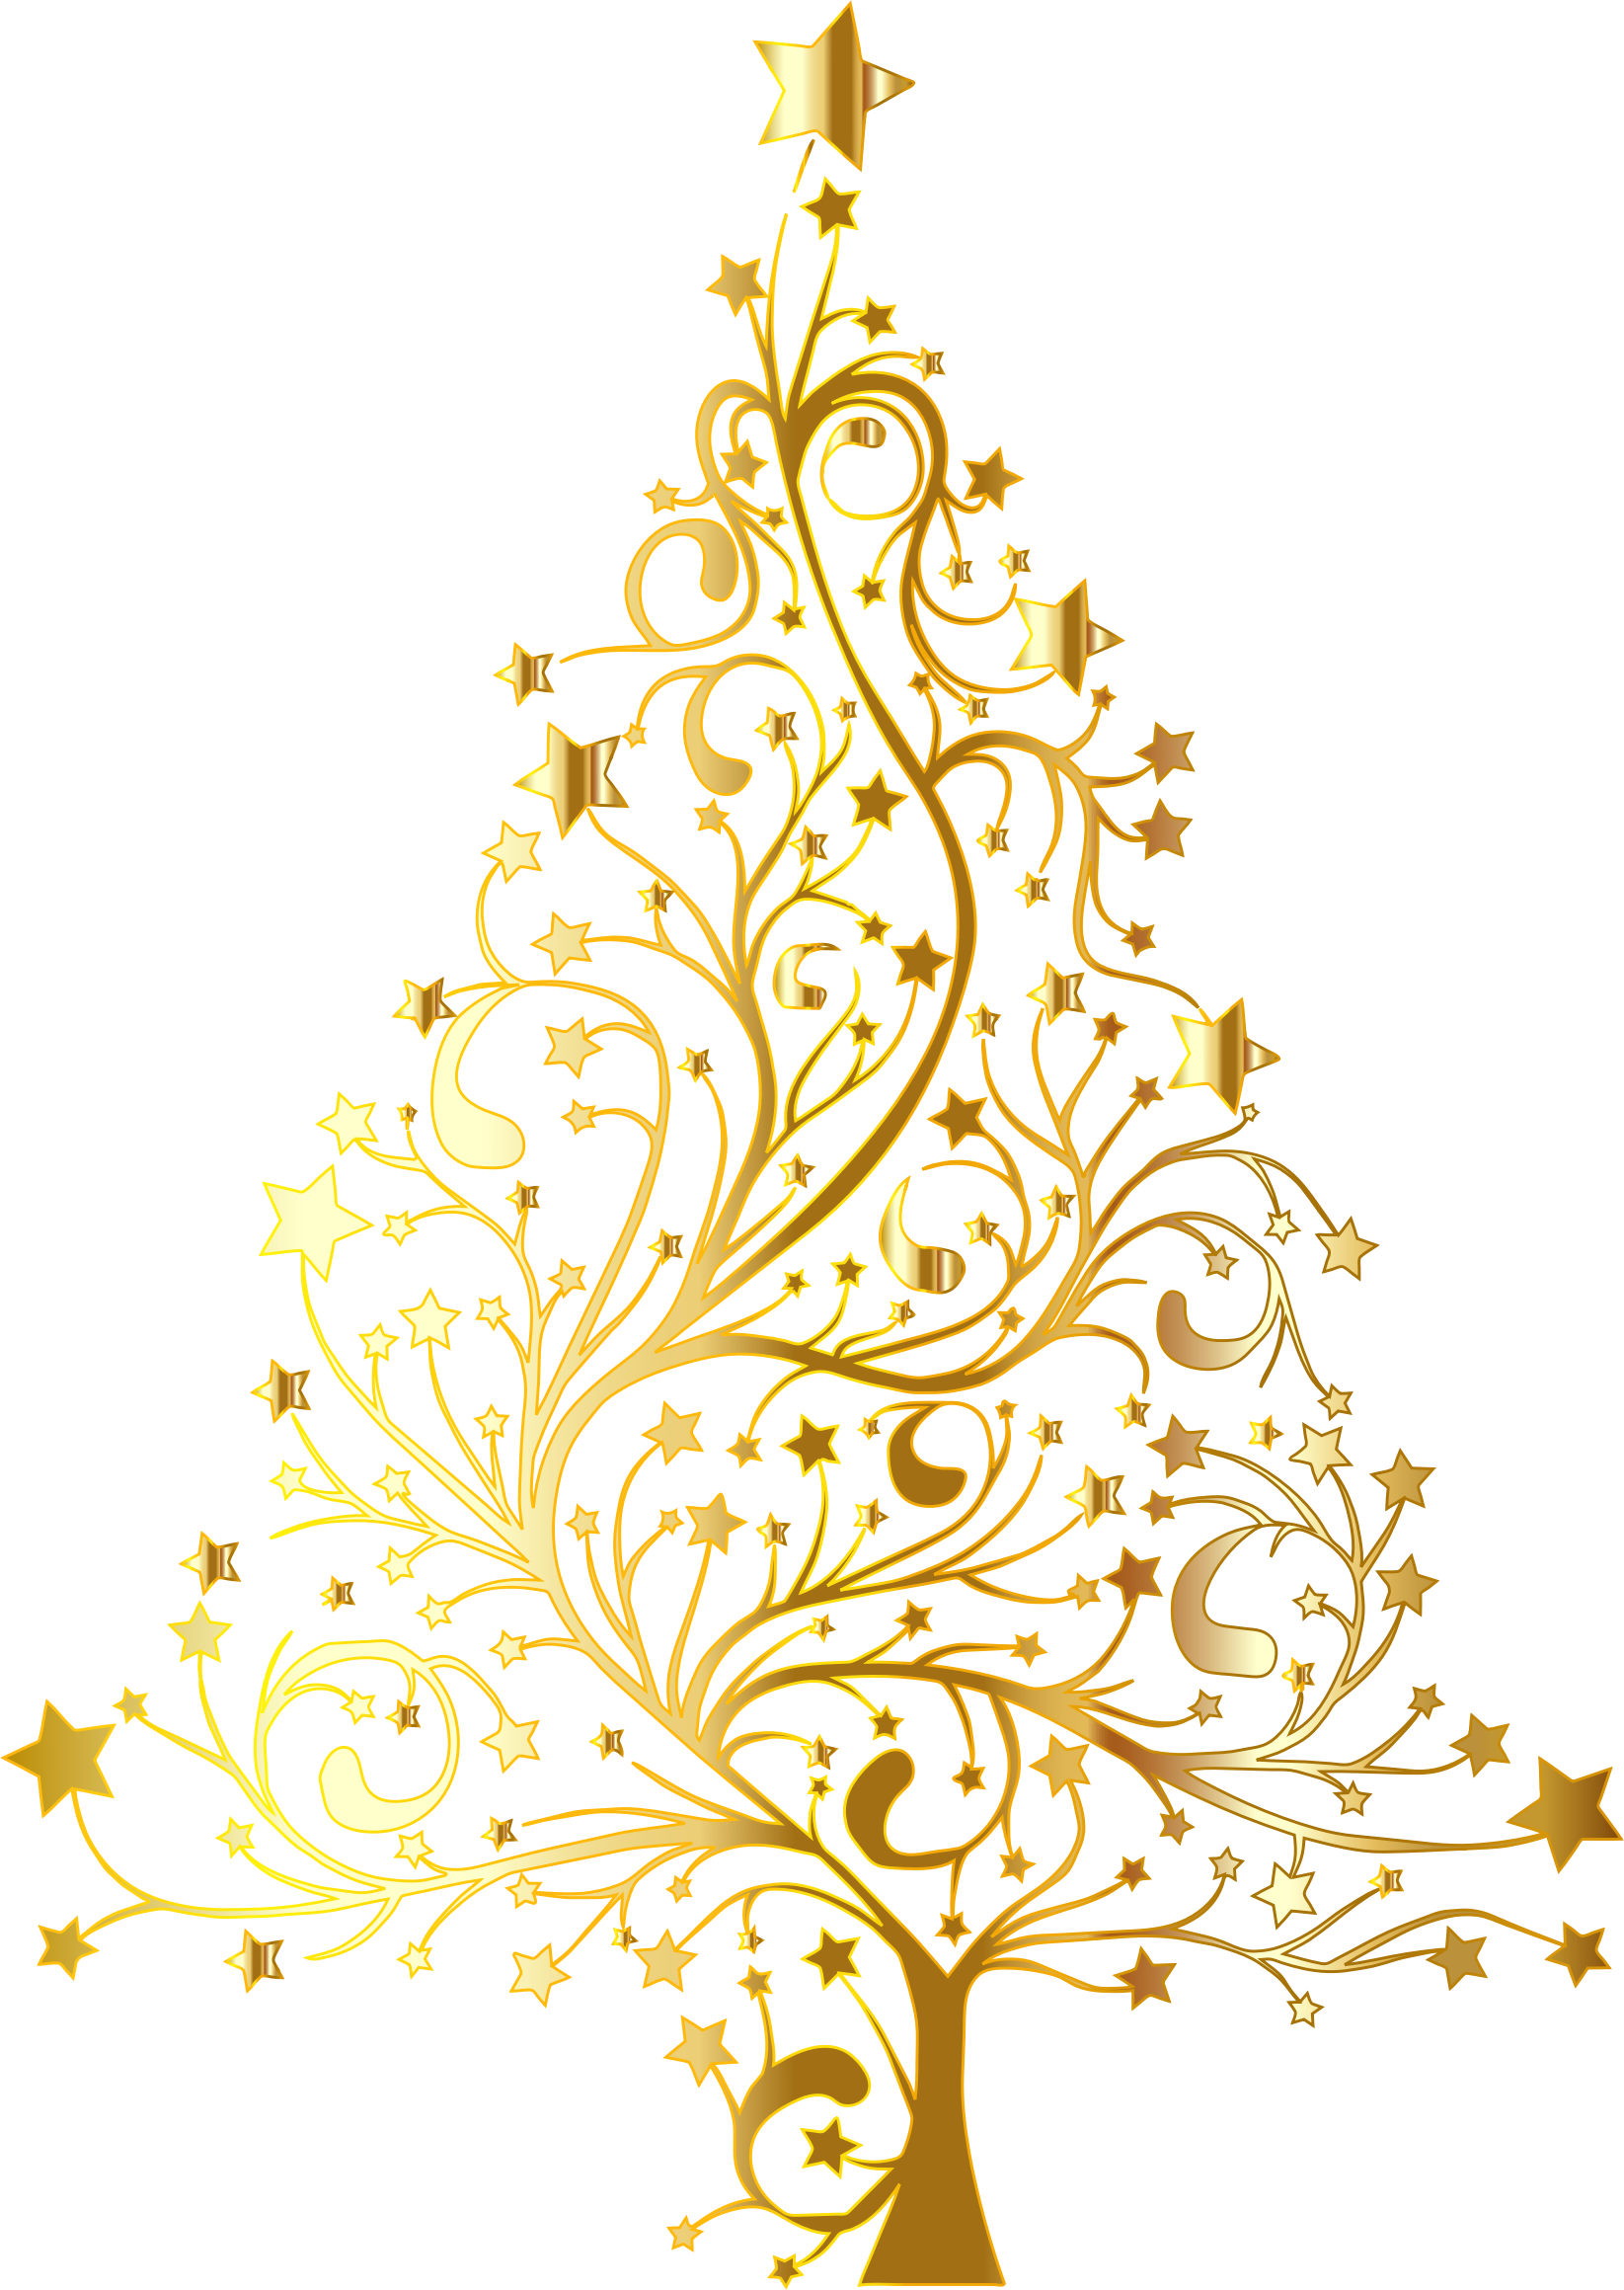 Tree no leaves clipart picture library stock Starry Christmas Tree Gold No Background picture library stock